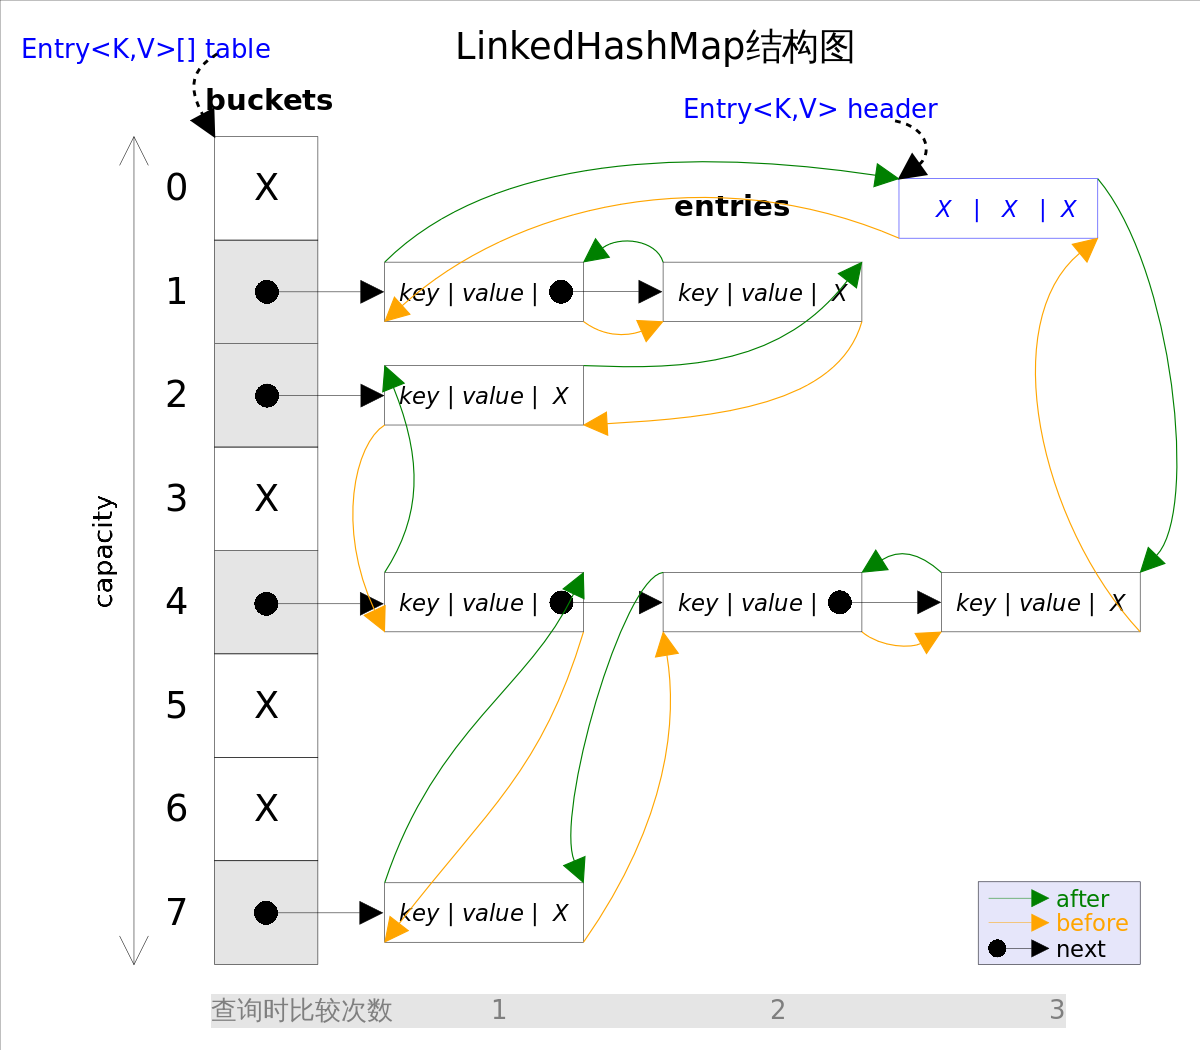 LinkedHashMap_base.png